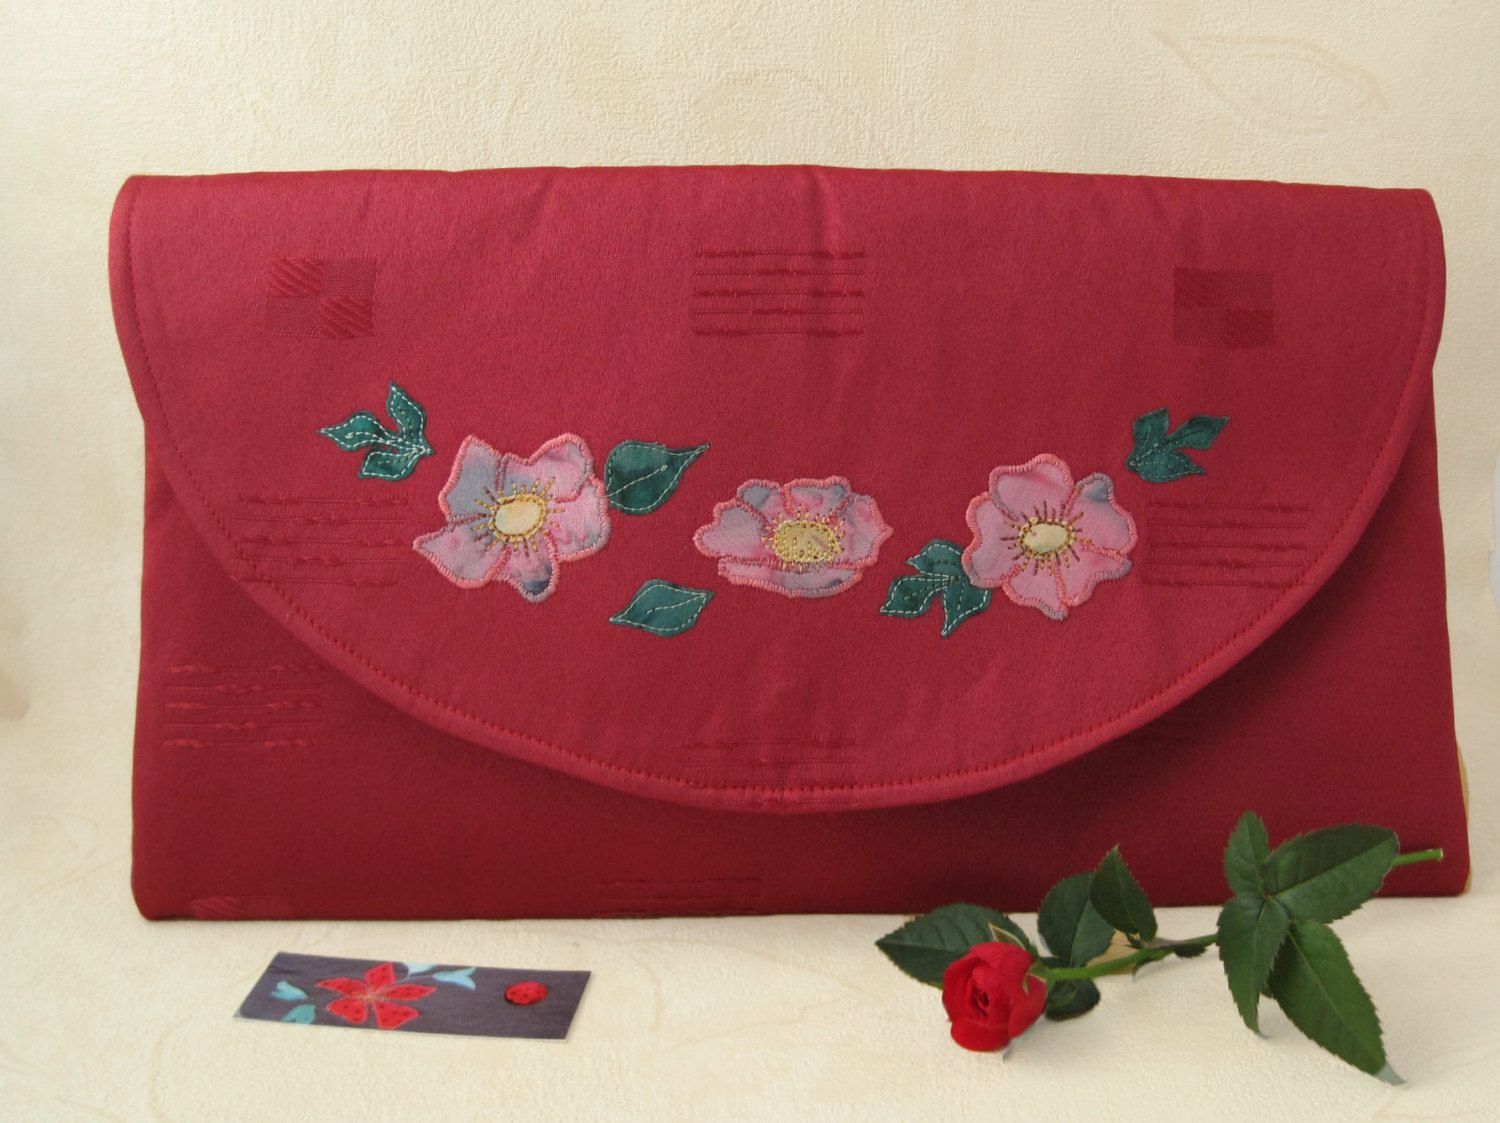 Red fabric clutch bag vintage style purse red envelope clutch